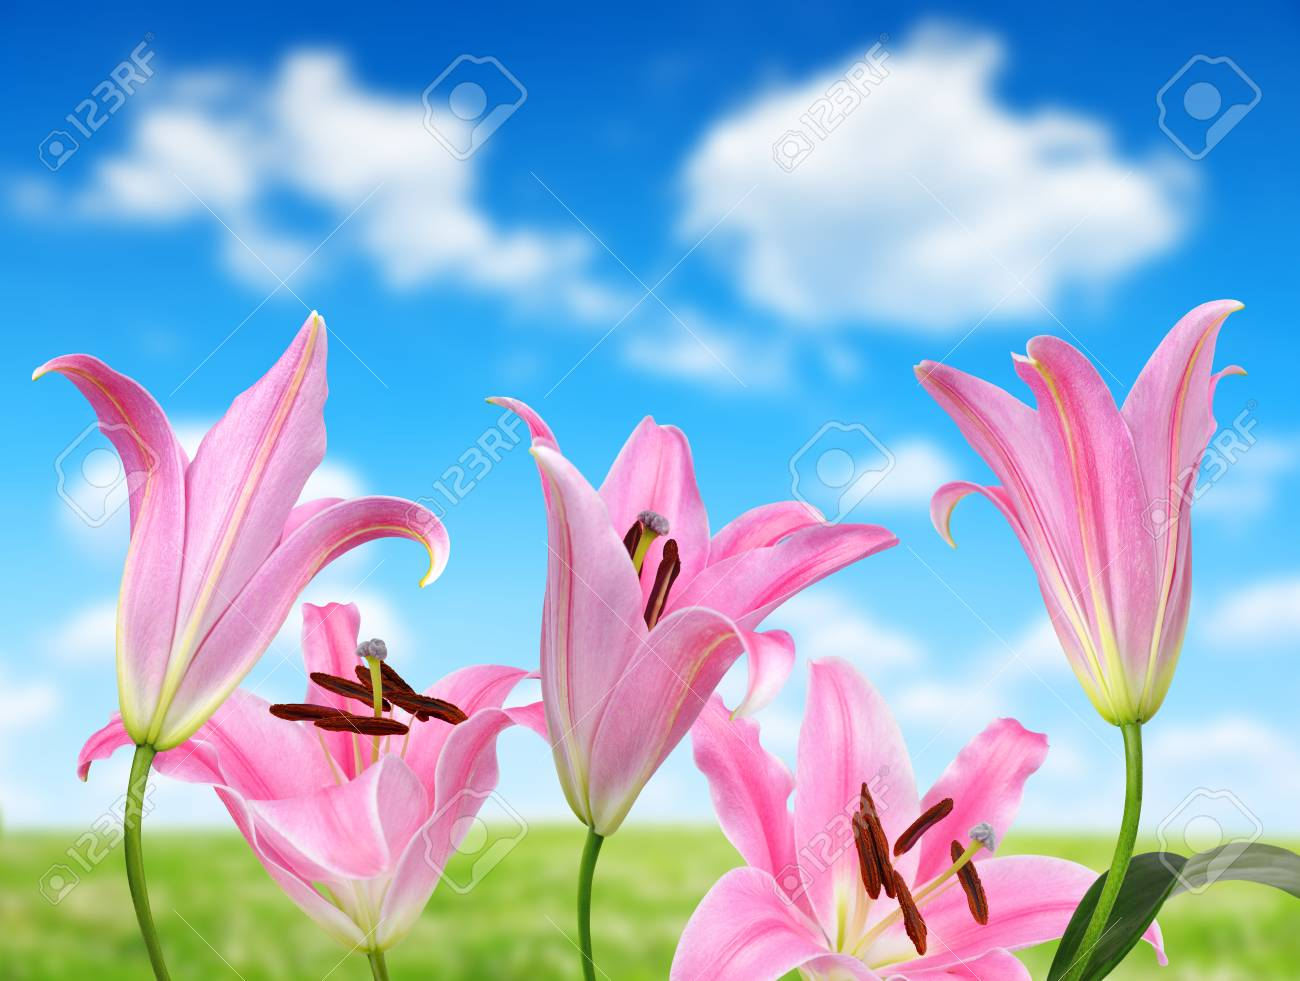 Pink lily flowers on the background blue sky stock photo picture pink lily flowers on the background blue sky stock photo 73932577 izmirmasajfo